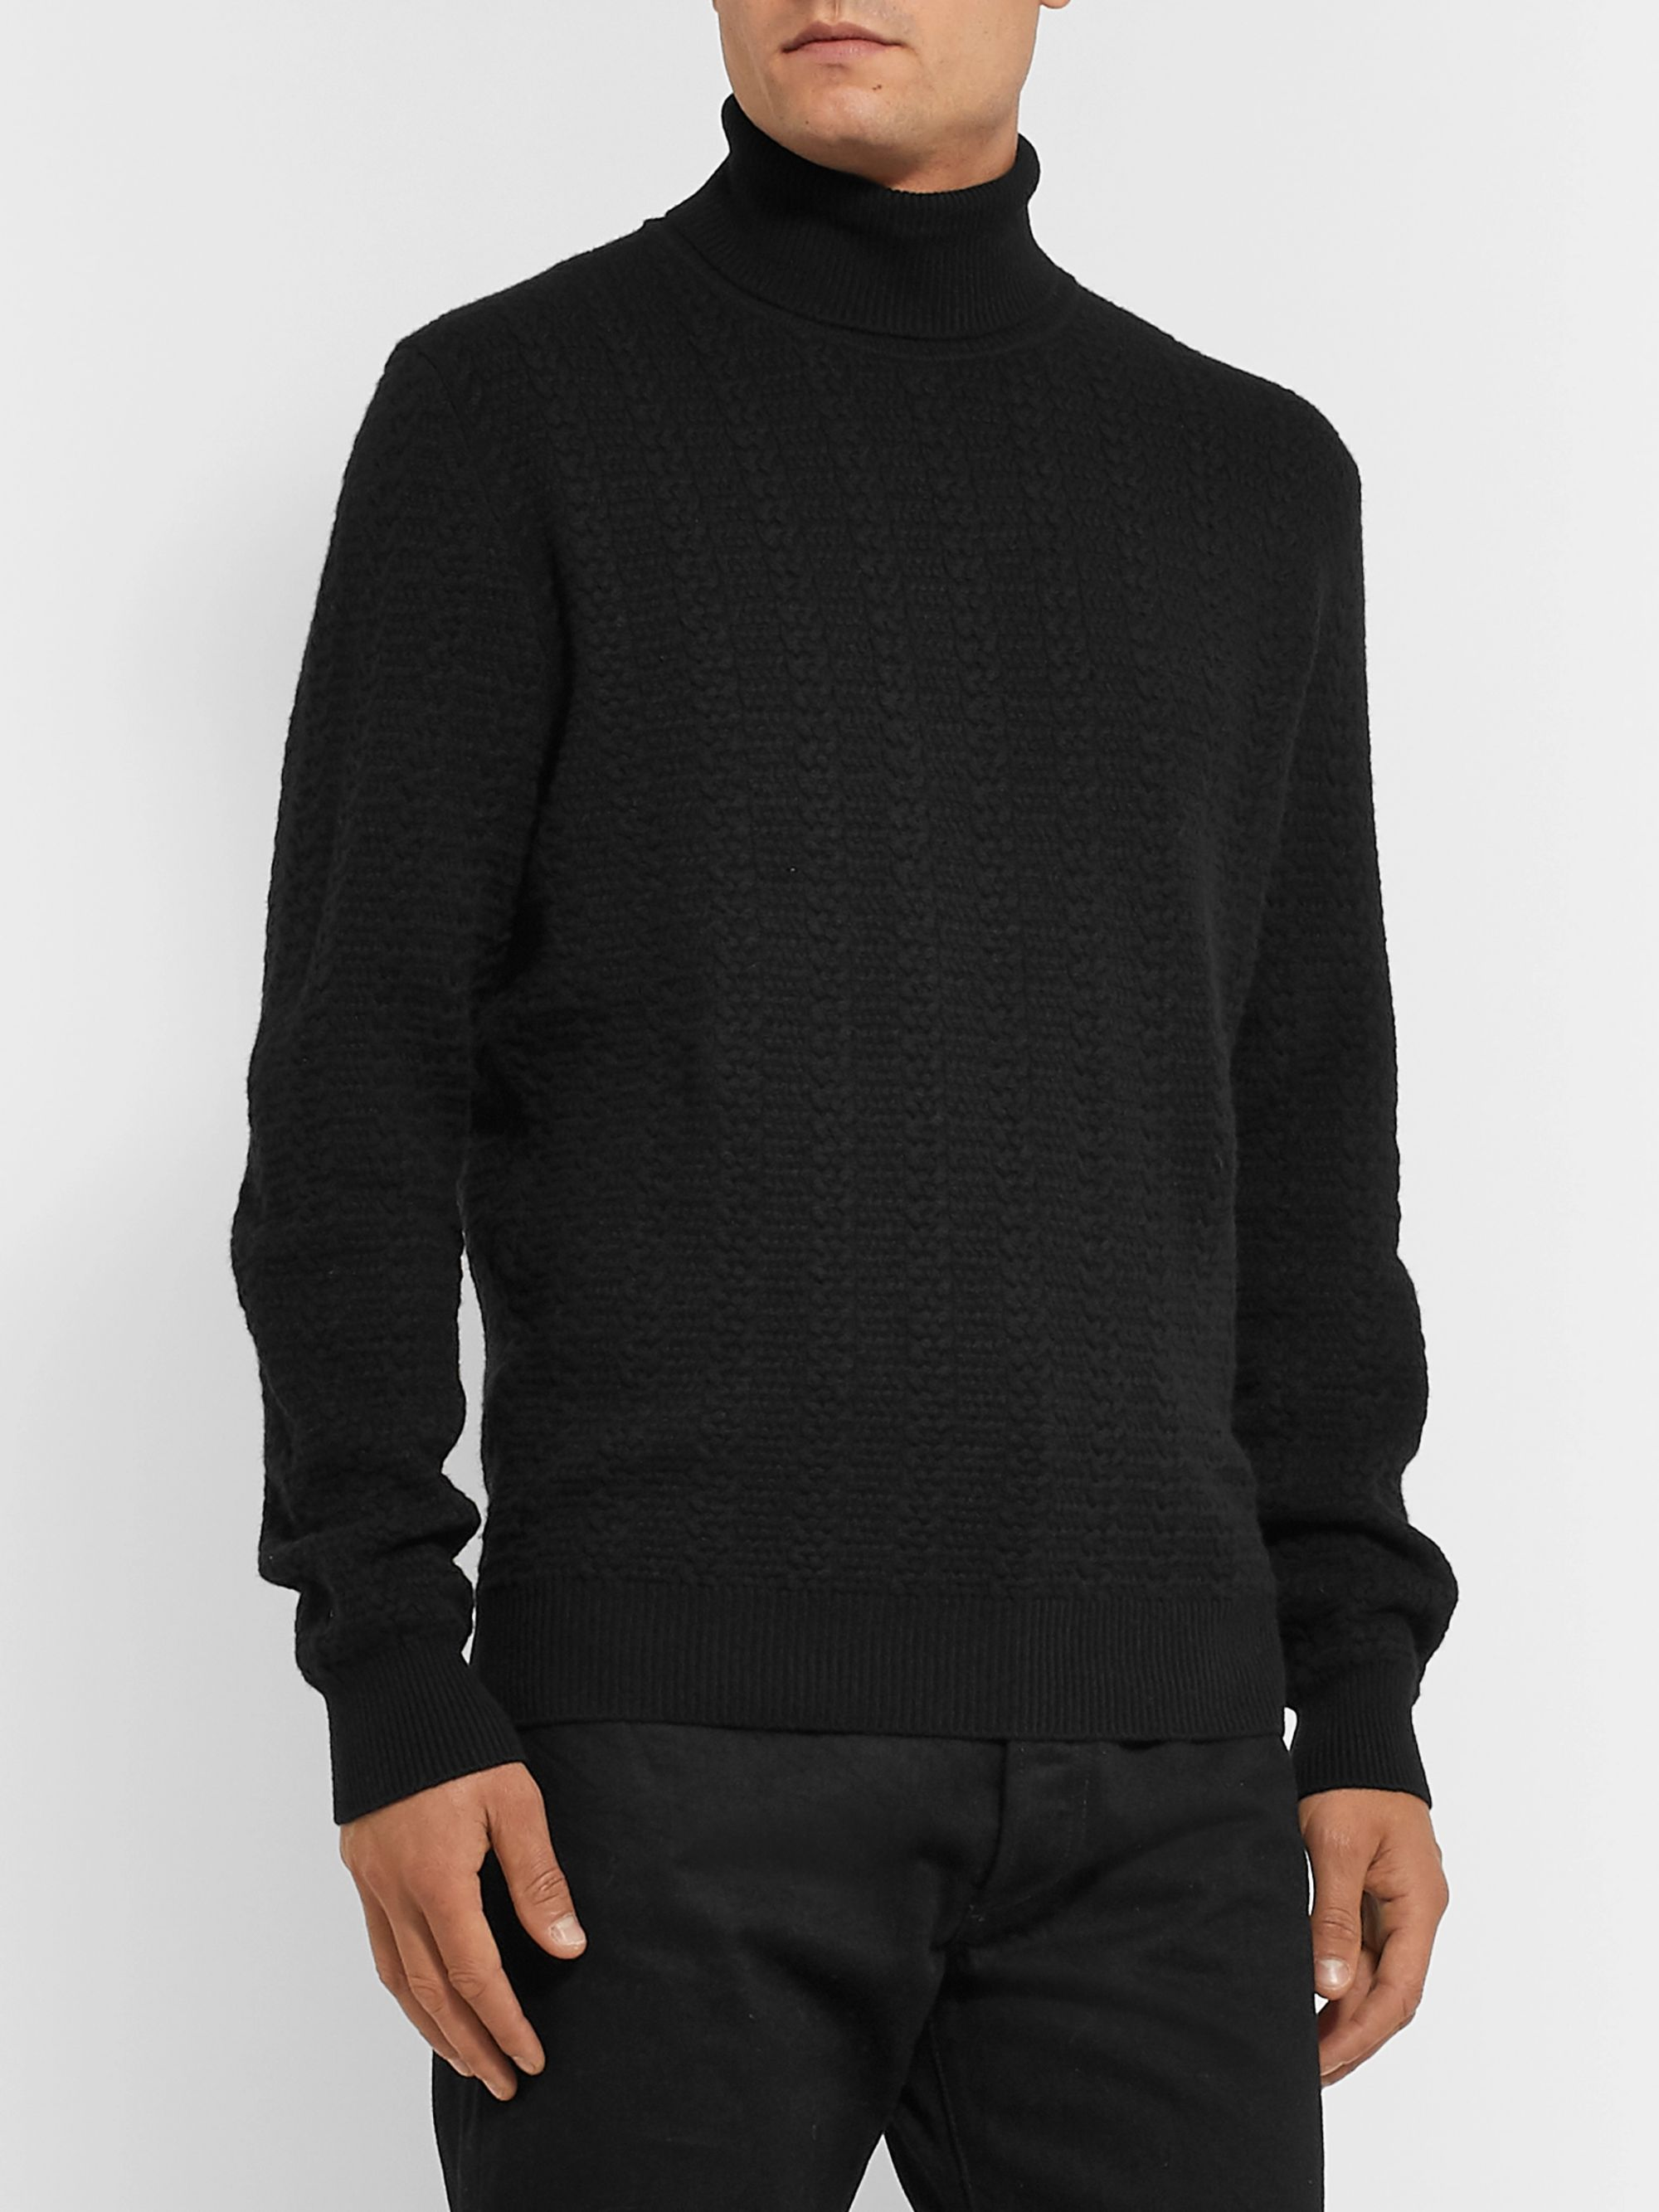 Ermenegildo Zegna Slim-Fit Cable-Knit Cashmere Rollneck Sweater